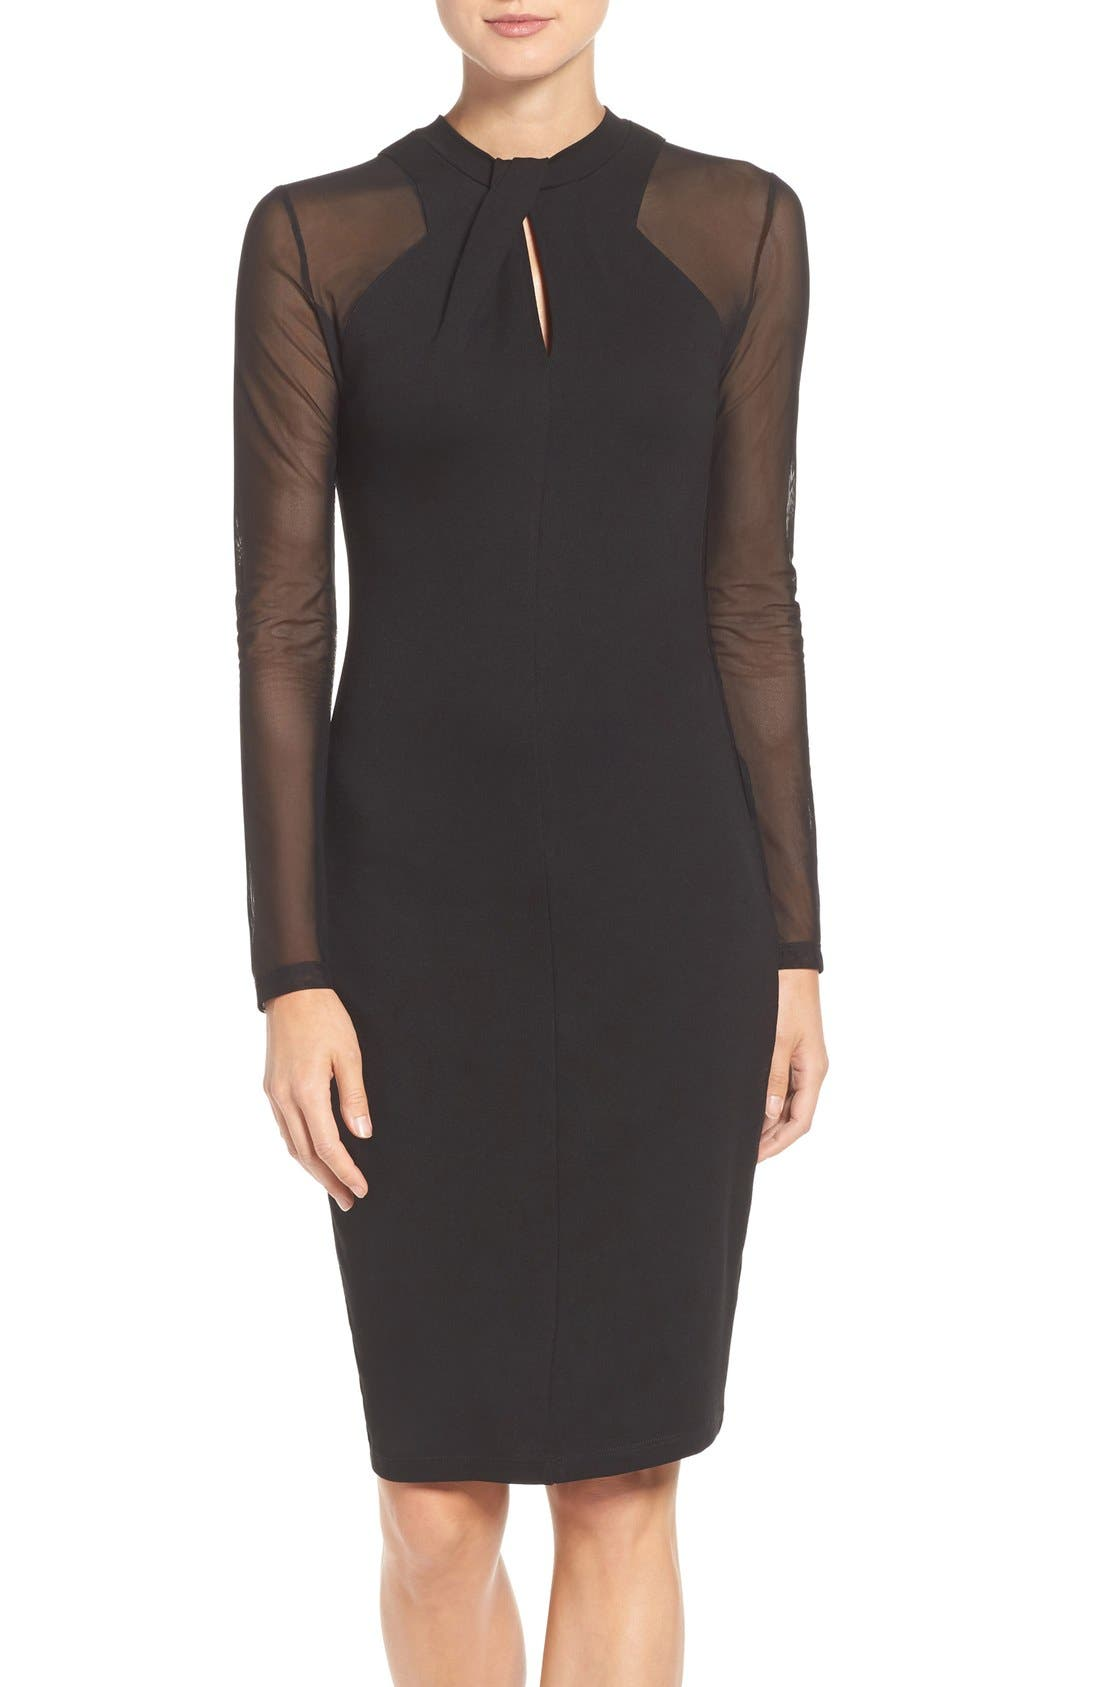 'Tania Tuck' Mesh Sleeve Sheath Dress,                         Main,                         color, Black